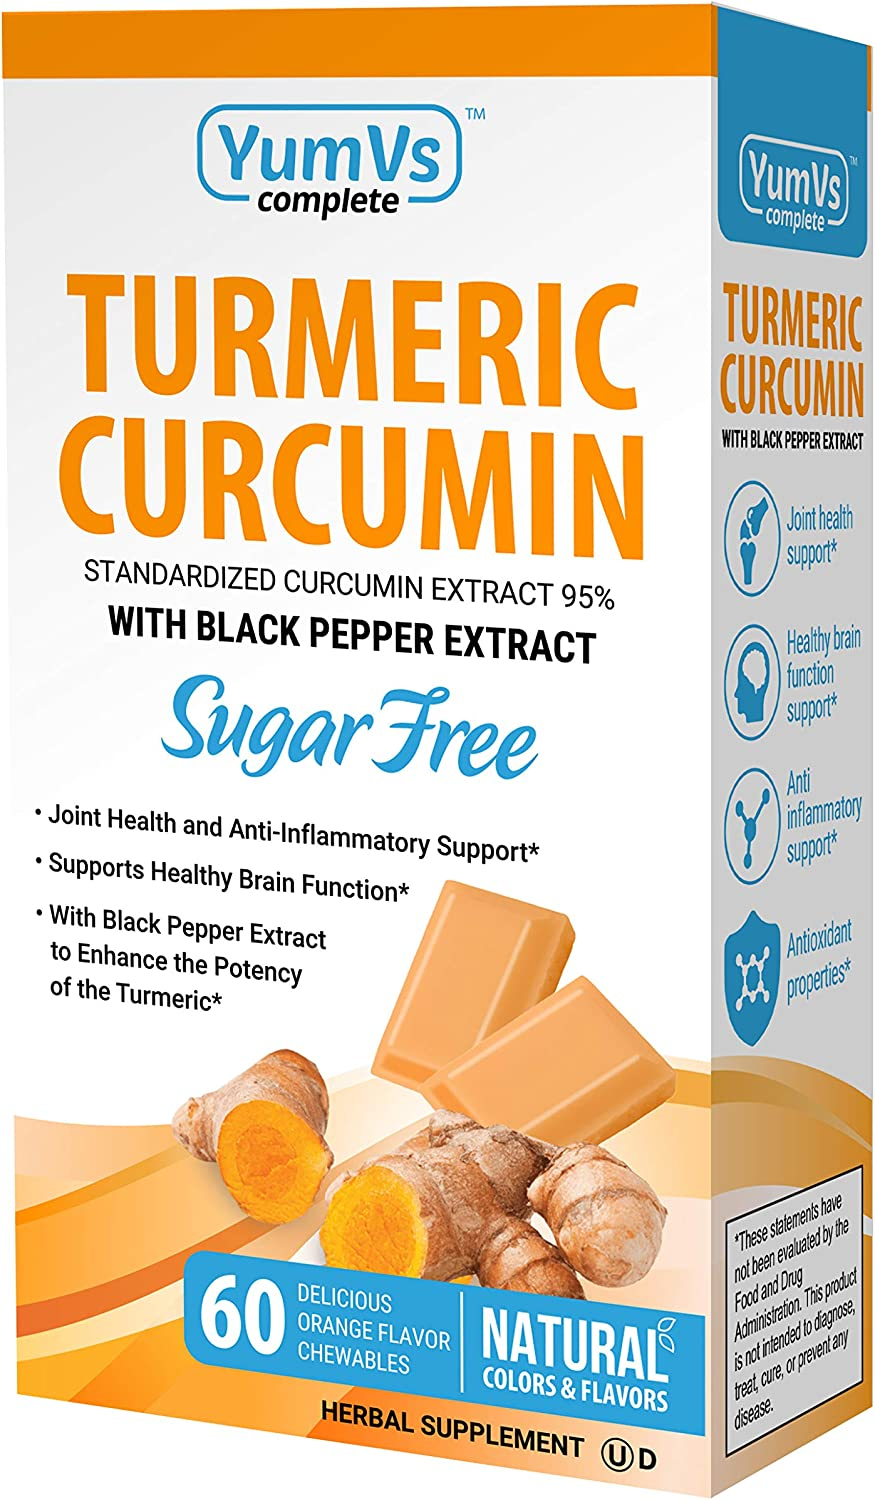 YumVs Complete Turmeric Curcumin Supplements, Sugar-Free Orange Flavored Chewable Chocolates for Men and Women (60 Ct); Kosher, Halal, Gluten-Free